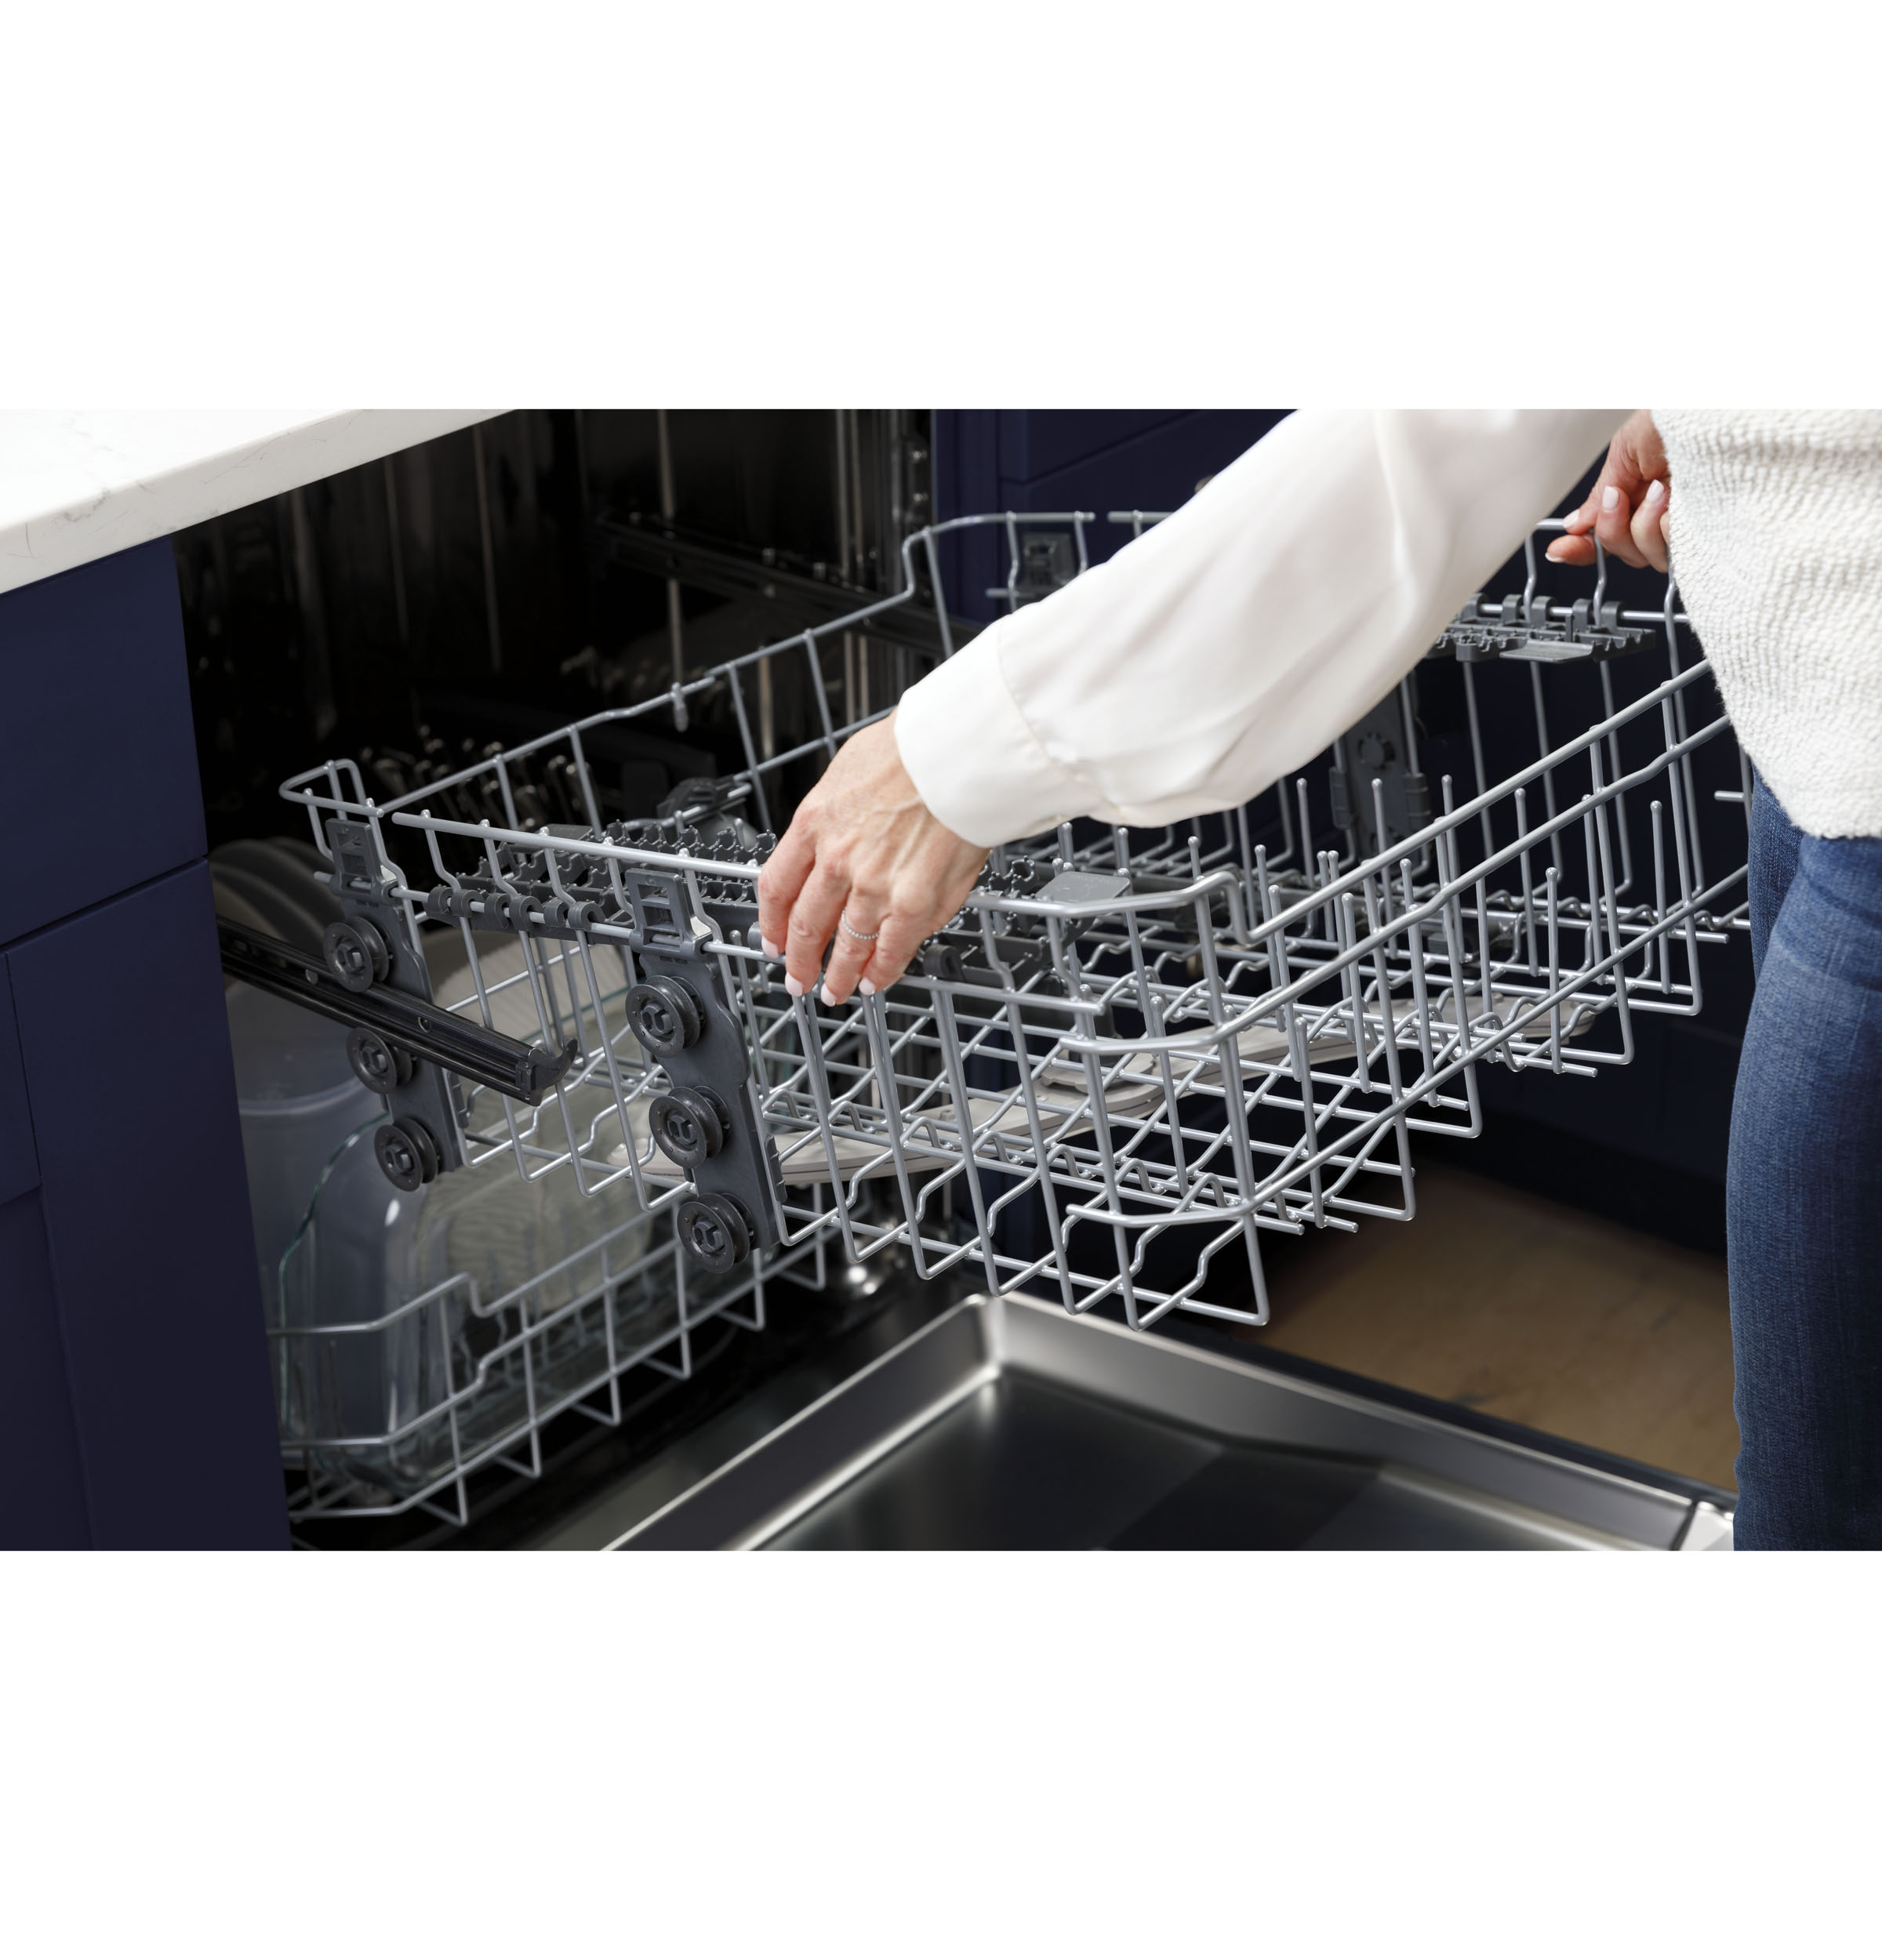 Model: GDT530PMPES | GE GE® Top Control with Plastic Interior Dishwasher with Sanitize Cycle & Dry Boost